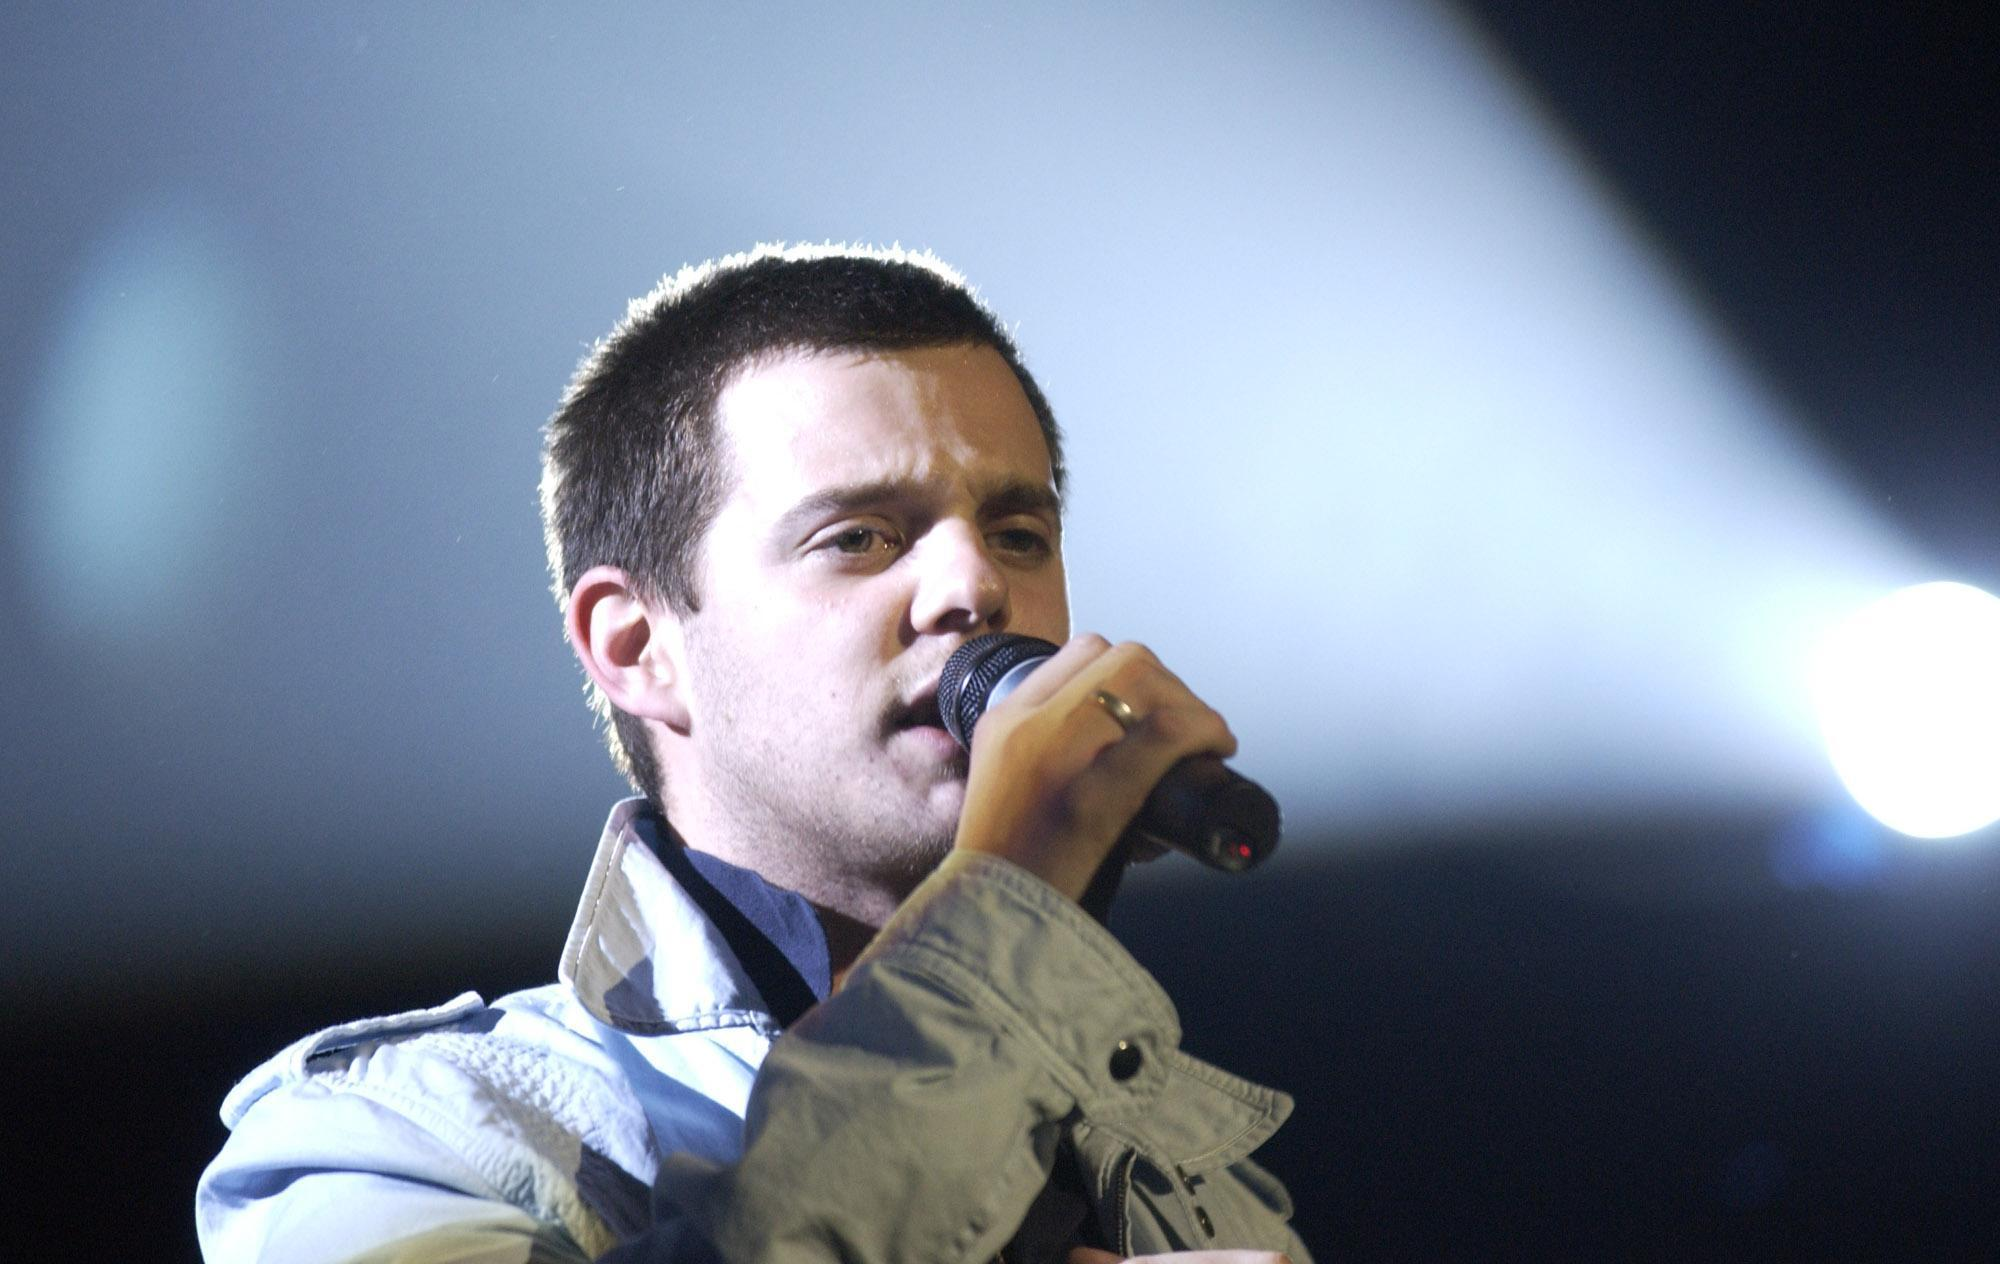 Mike Skinner The Streets 2004